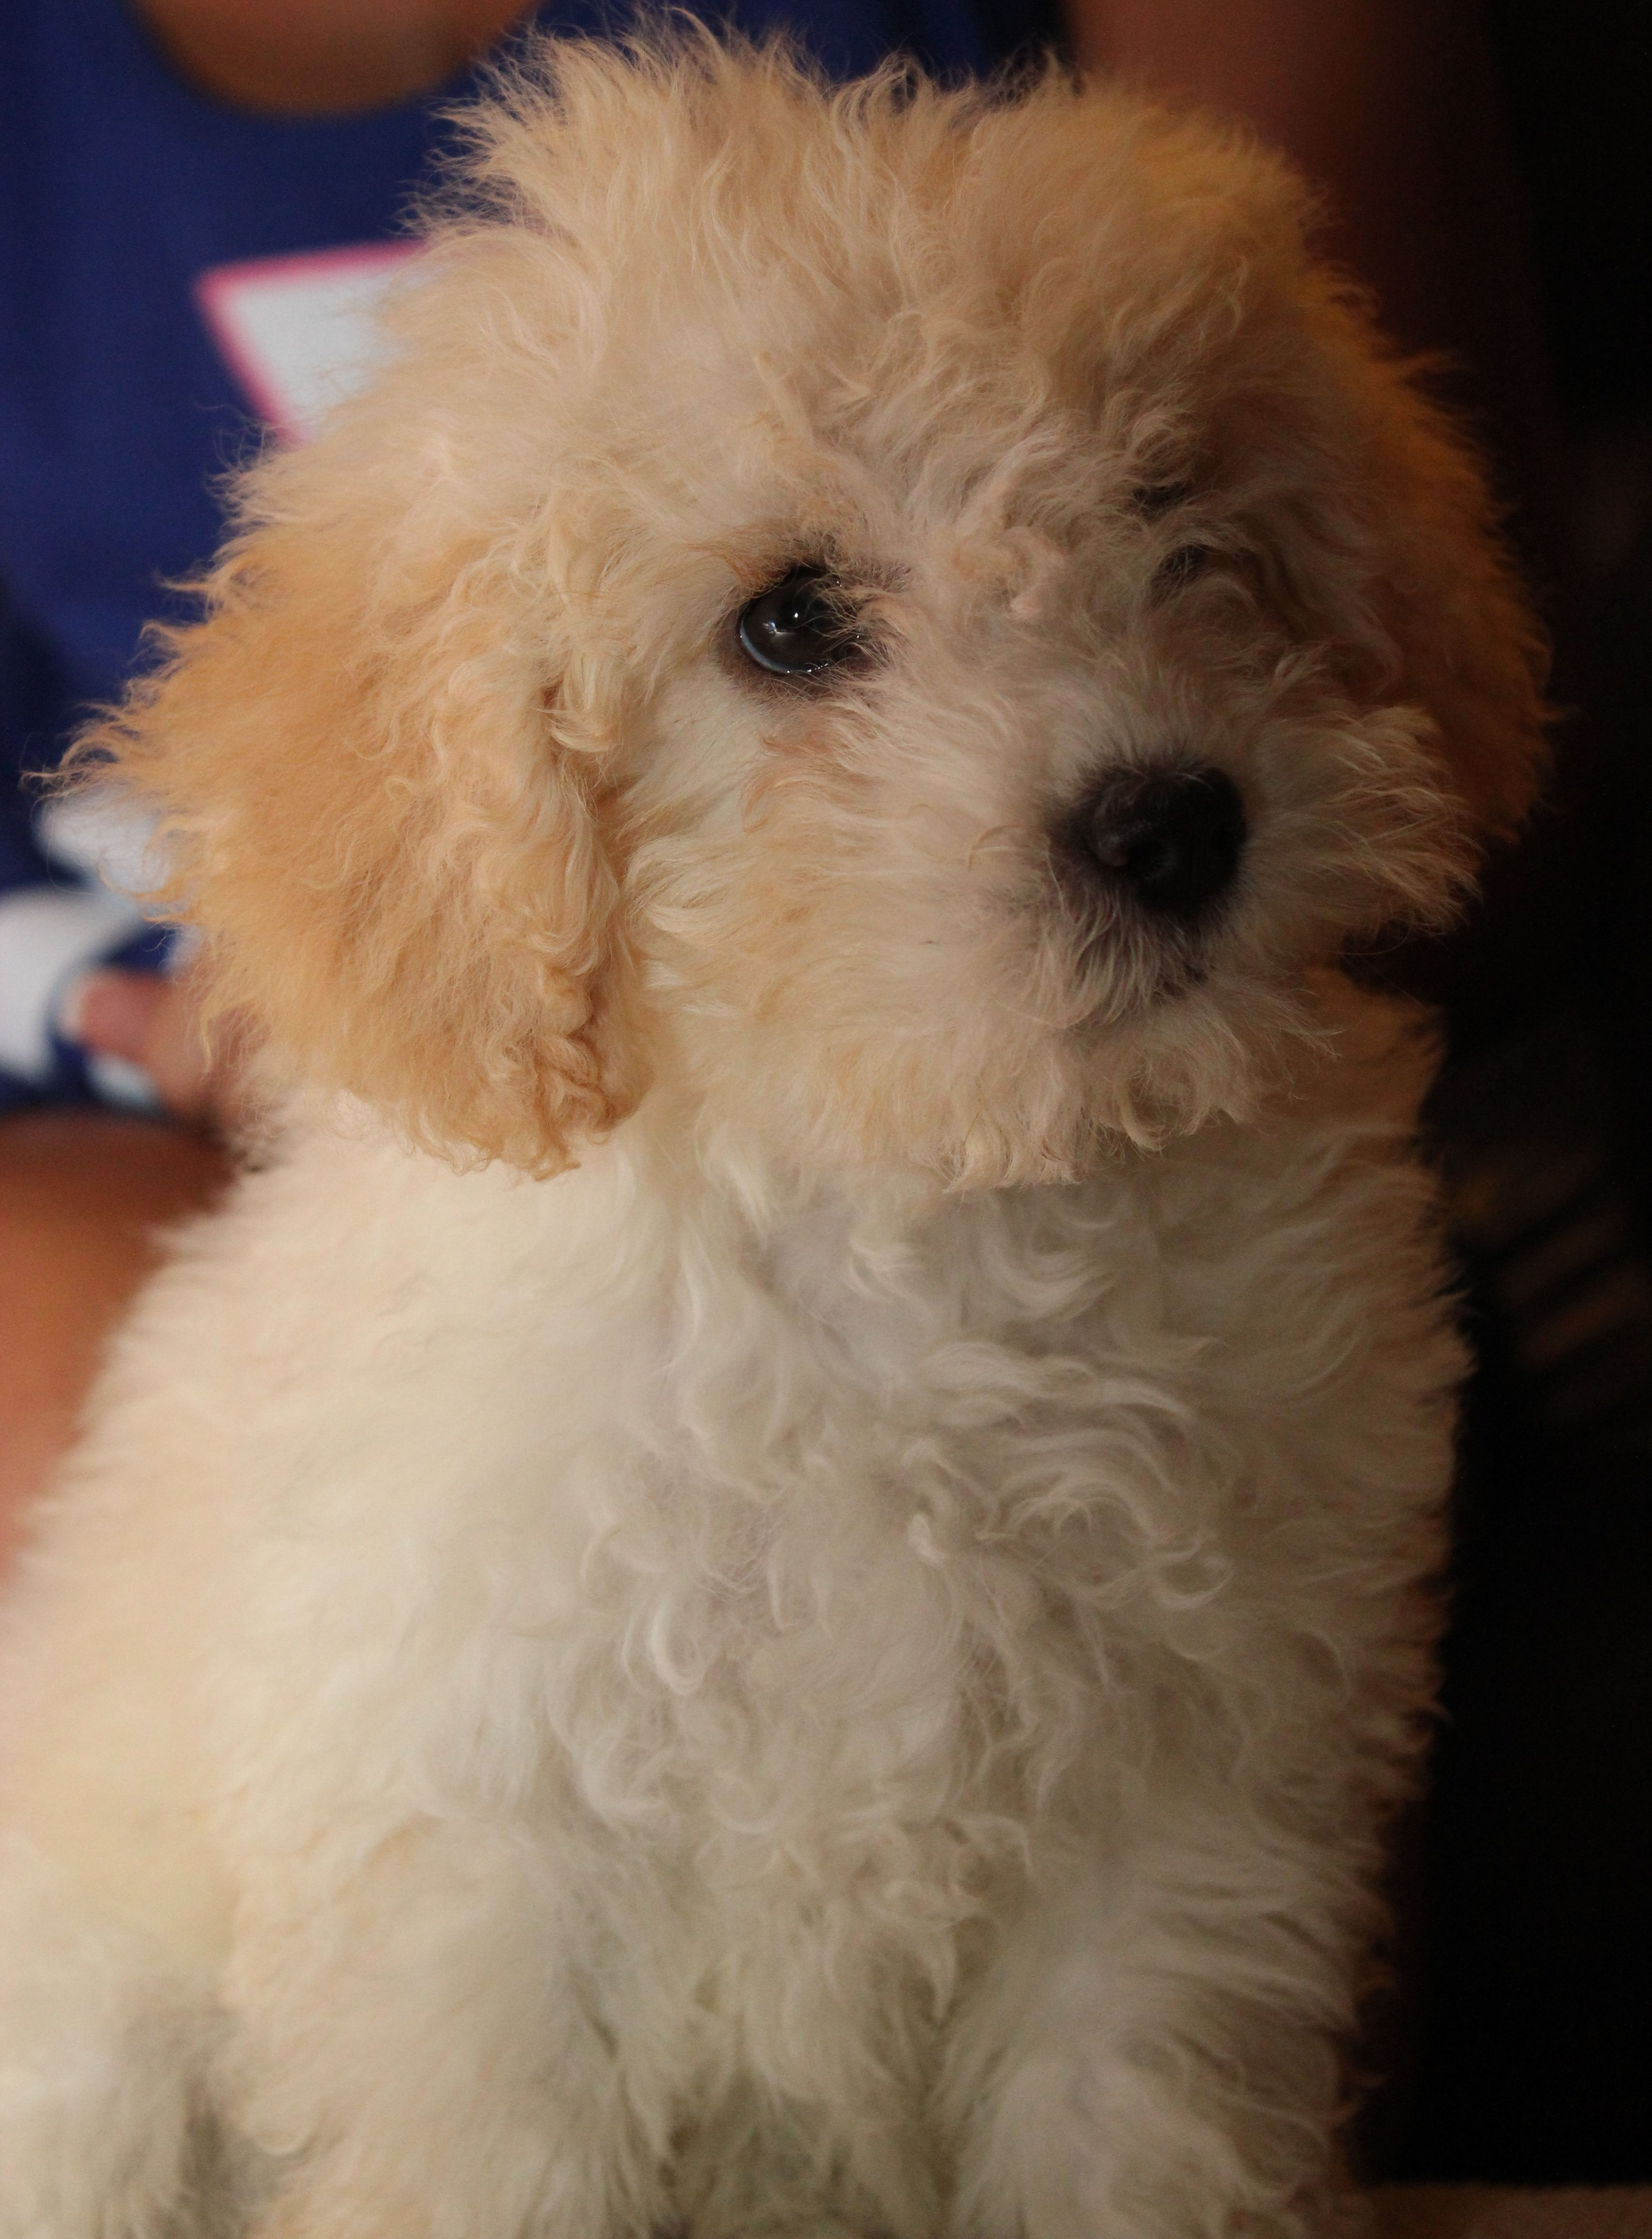 Maltese Poodle Puppy 0 Puppies Kittens Cats And Dogs Dogs